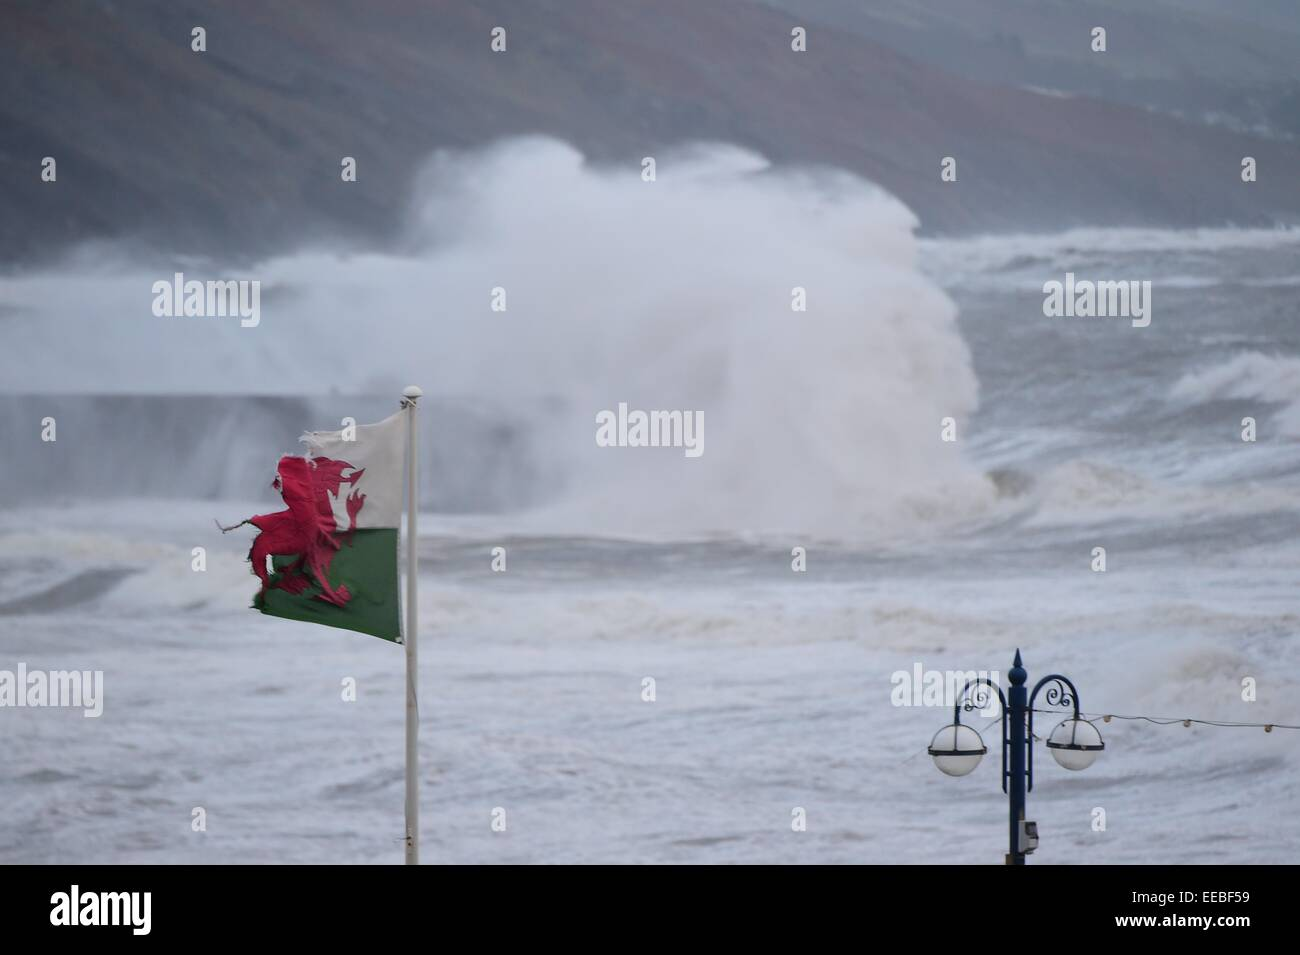 Aberystwyth, Wales, UK. 15th January, 2015. UK Weather: A battered and torn welsh flag flies as gale force winds - Stock Image